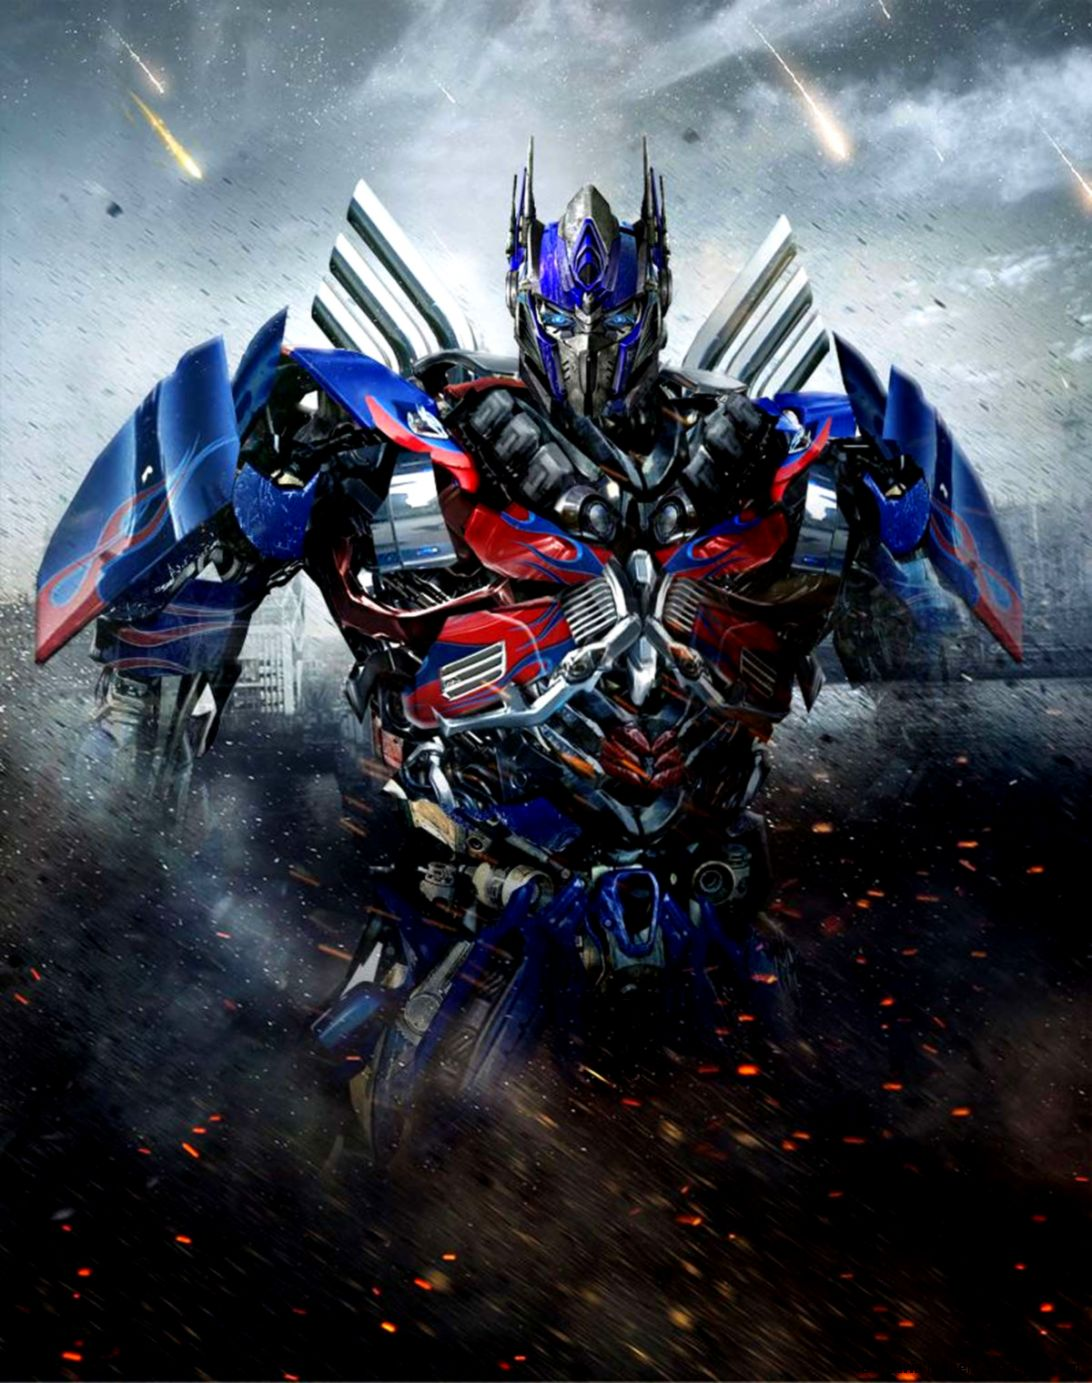 transformers age of extinction wallpaper hd 1080p all hd